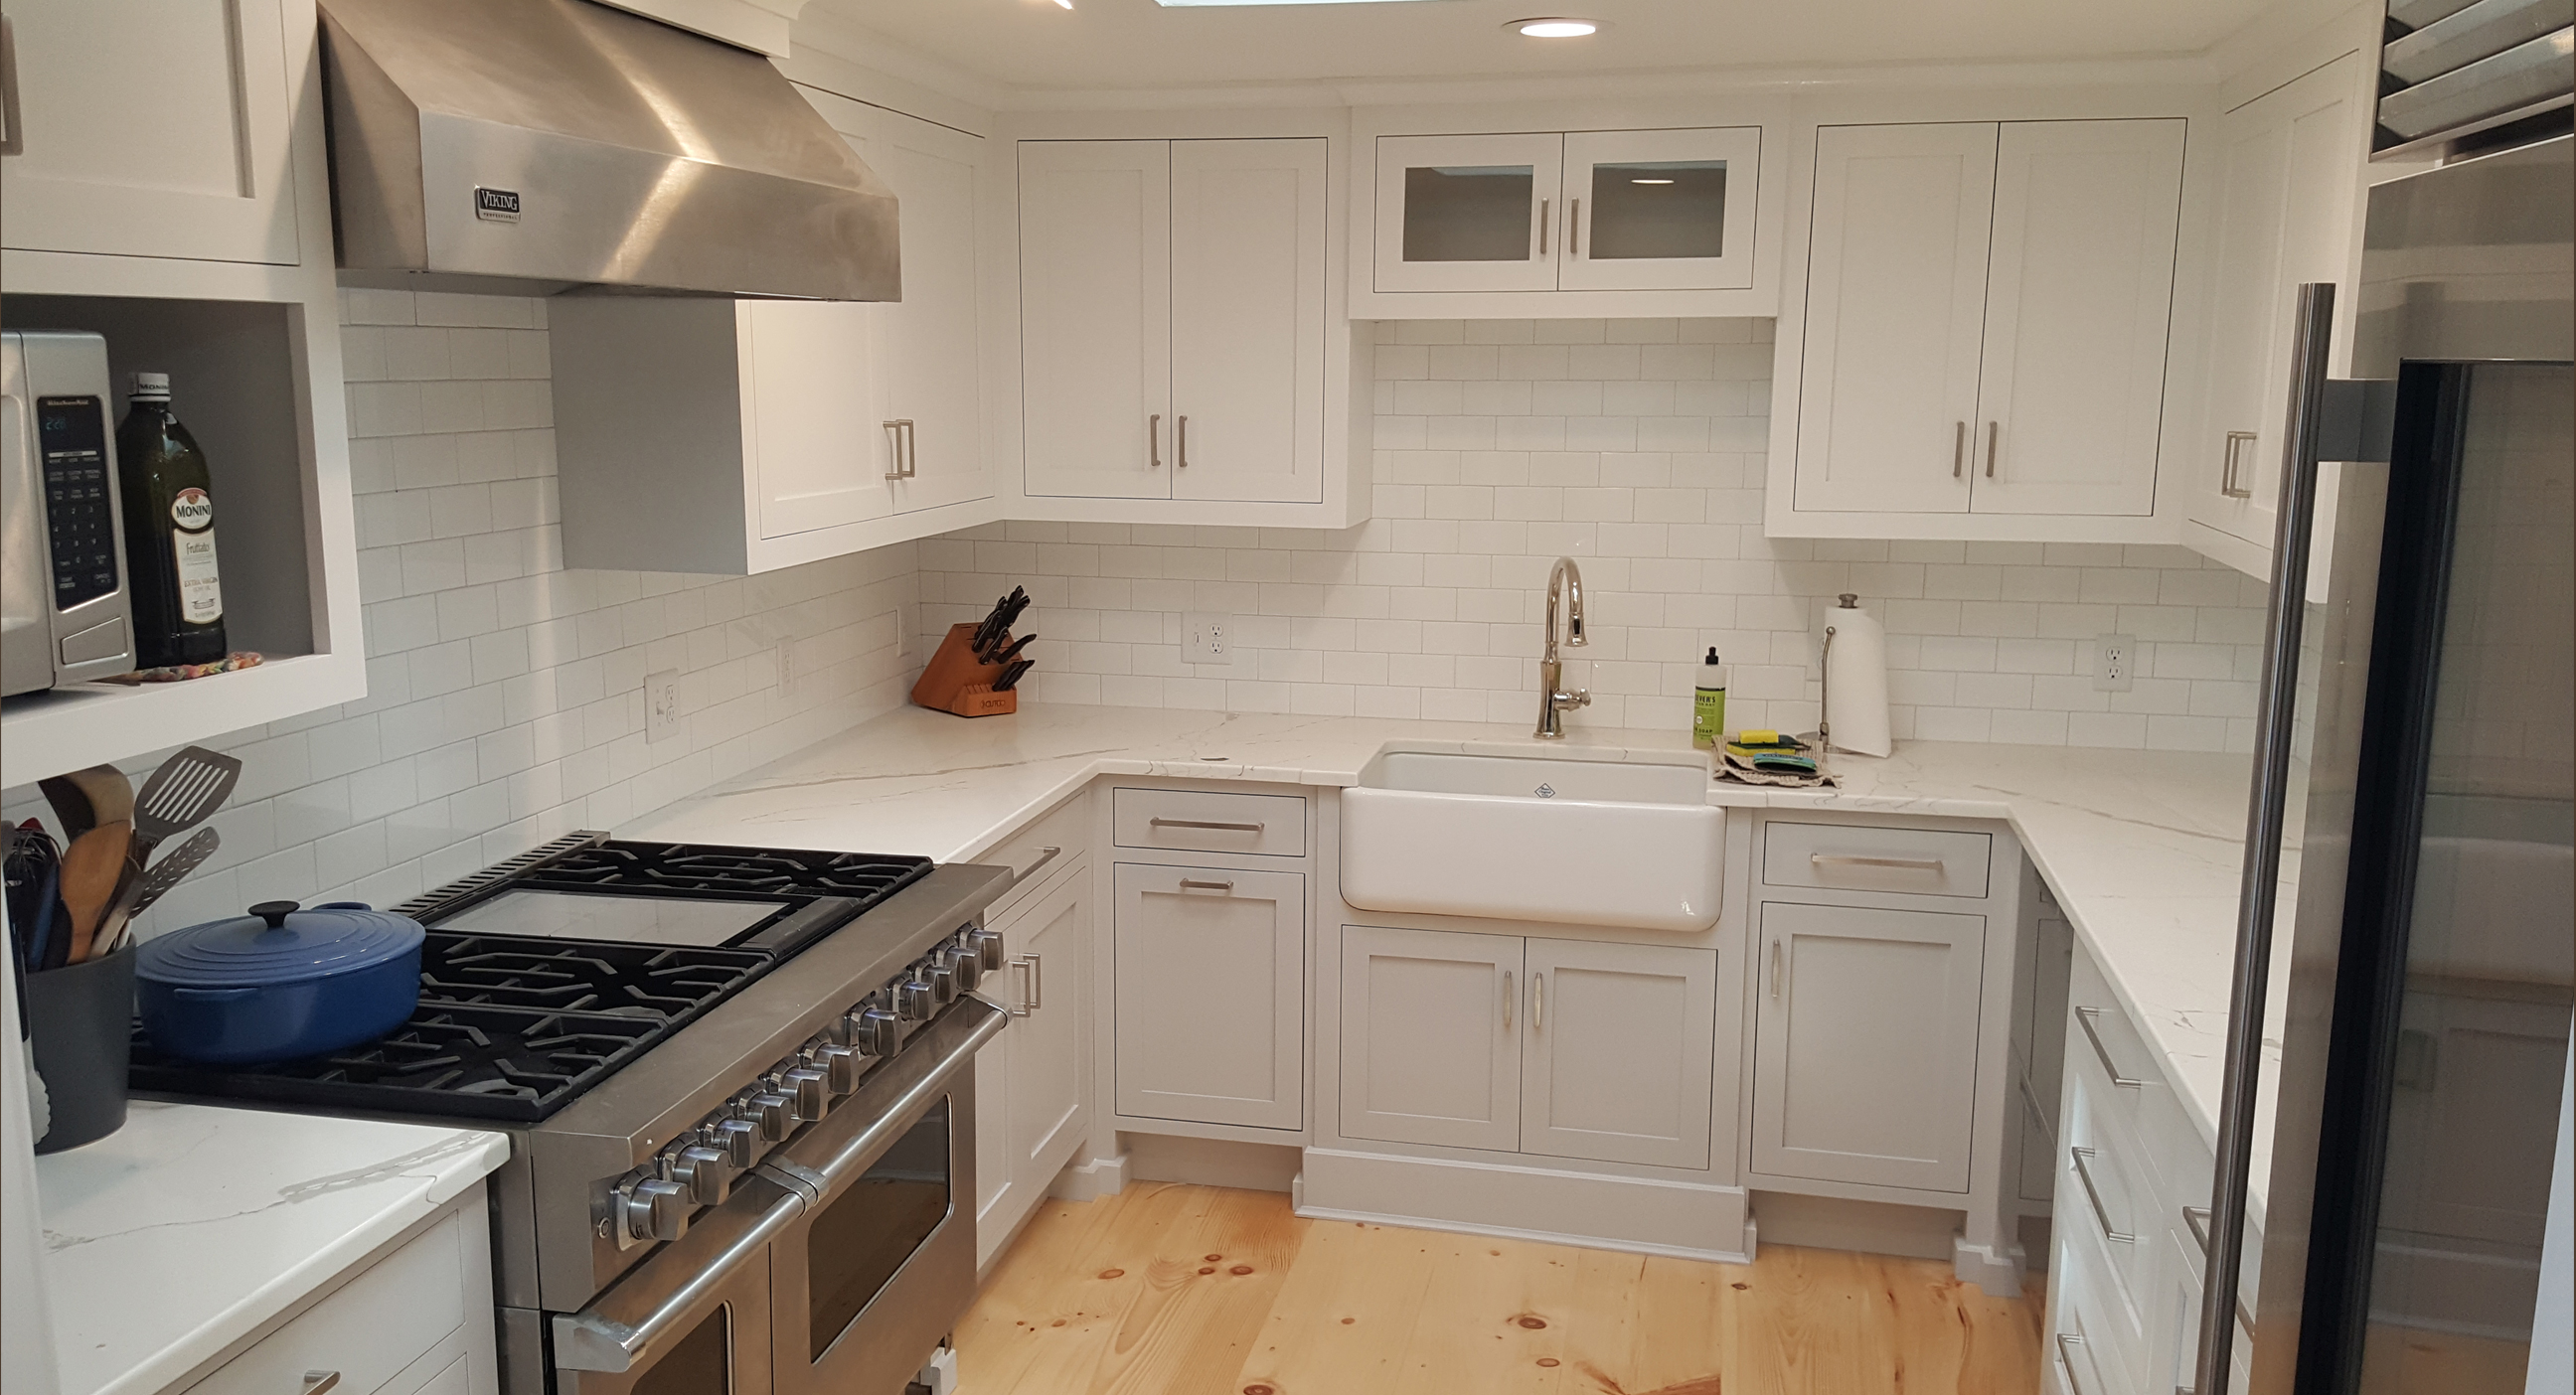 Custom Kitchen Cabinets Massachusetts Bass River Carpentry Of Cape Cod Ma Richard Pelletier